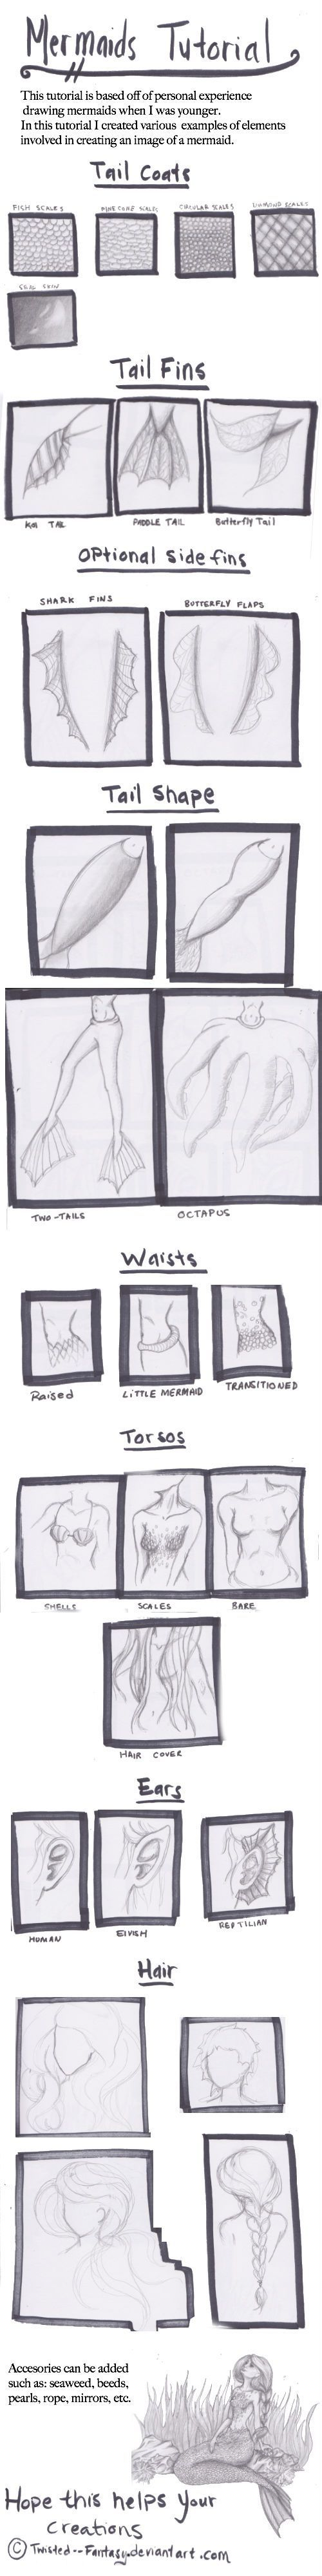 Mermaid Tutorial by Twisted--Fantasy on deviantART #drawingtutorial